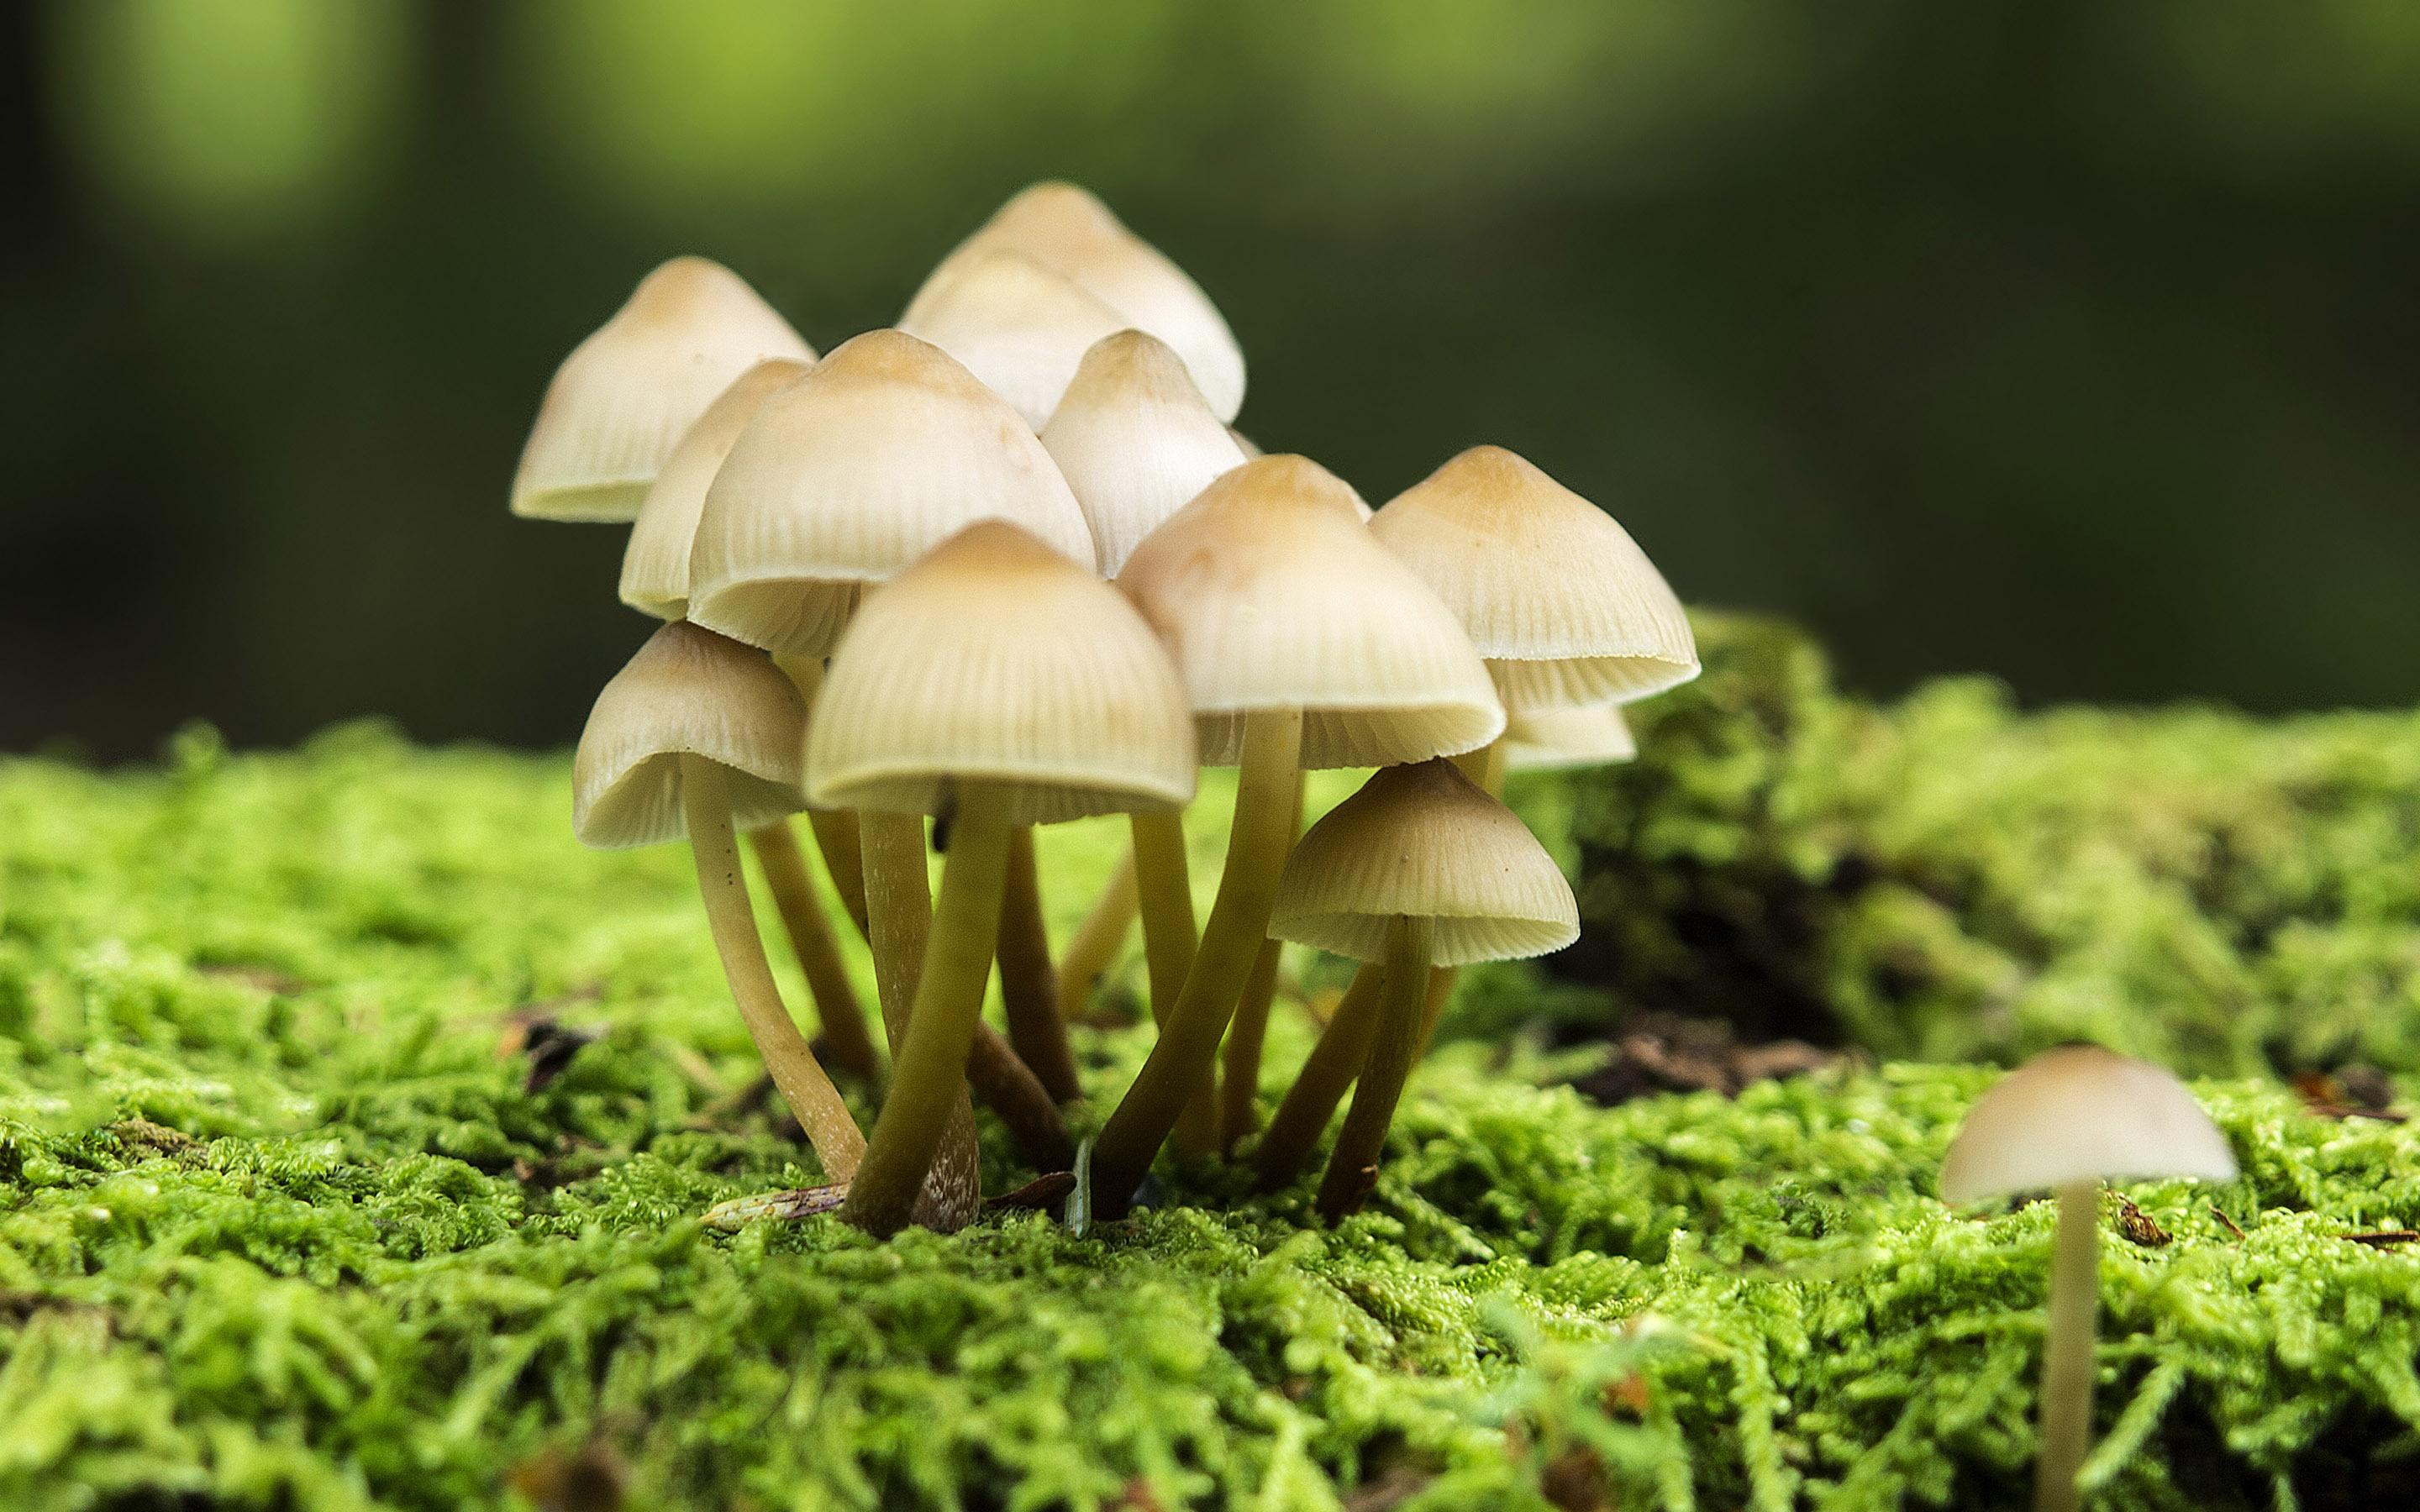 31 Excellent Hd Mushroom Wallpapers